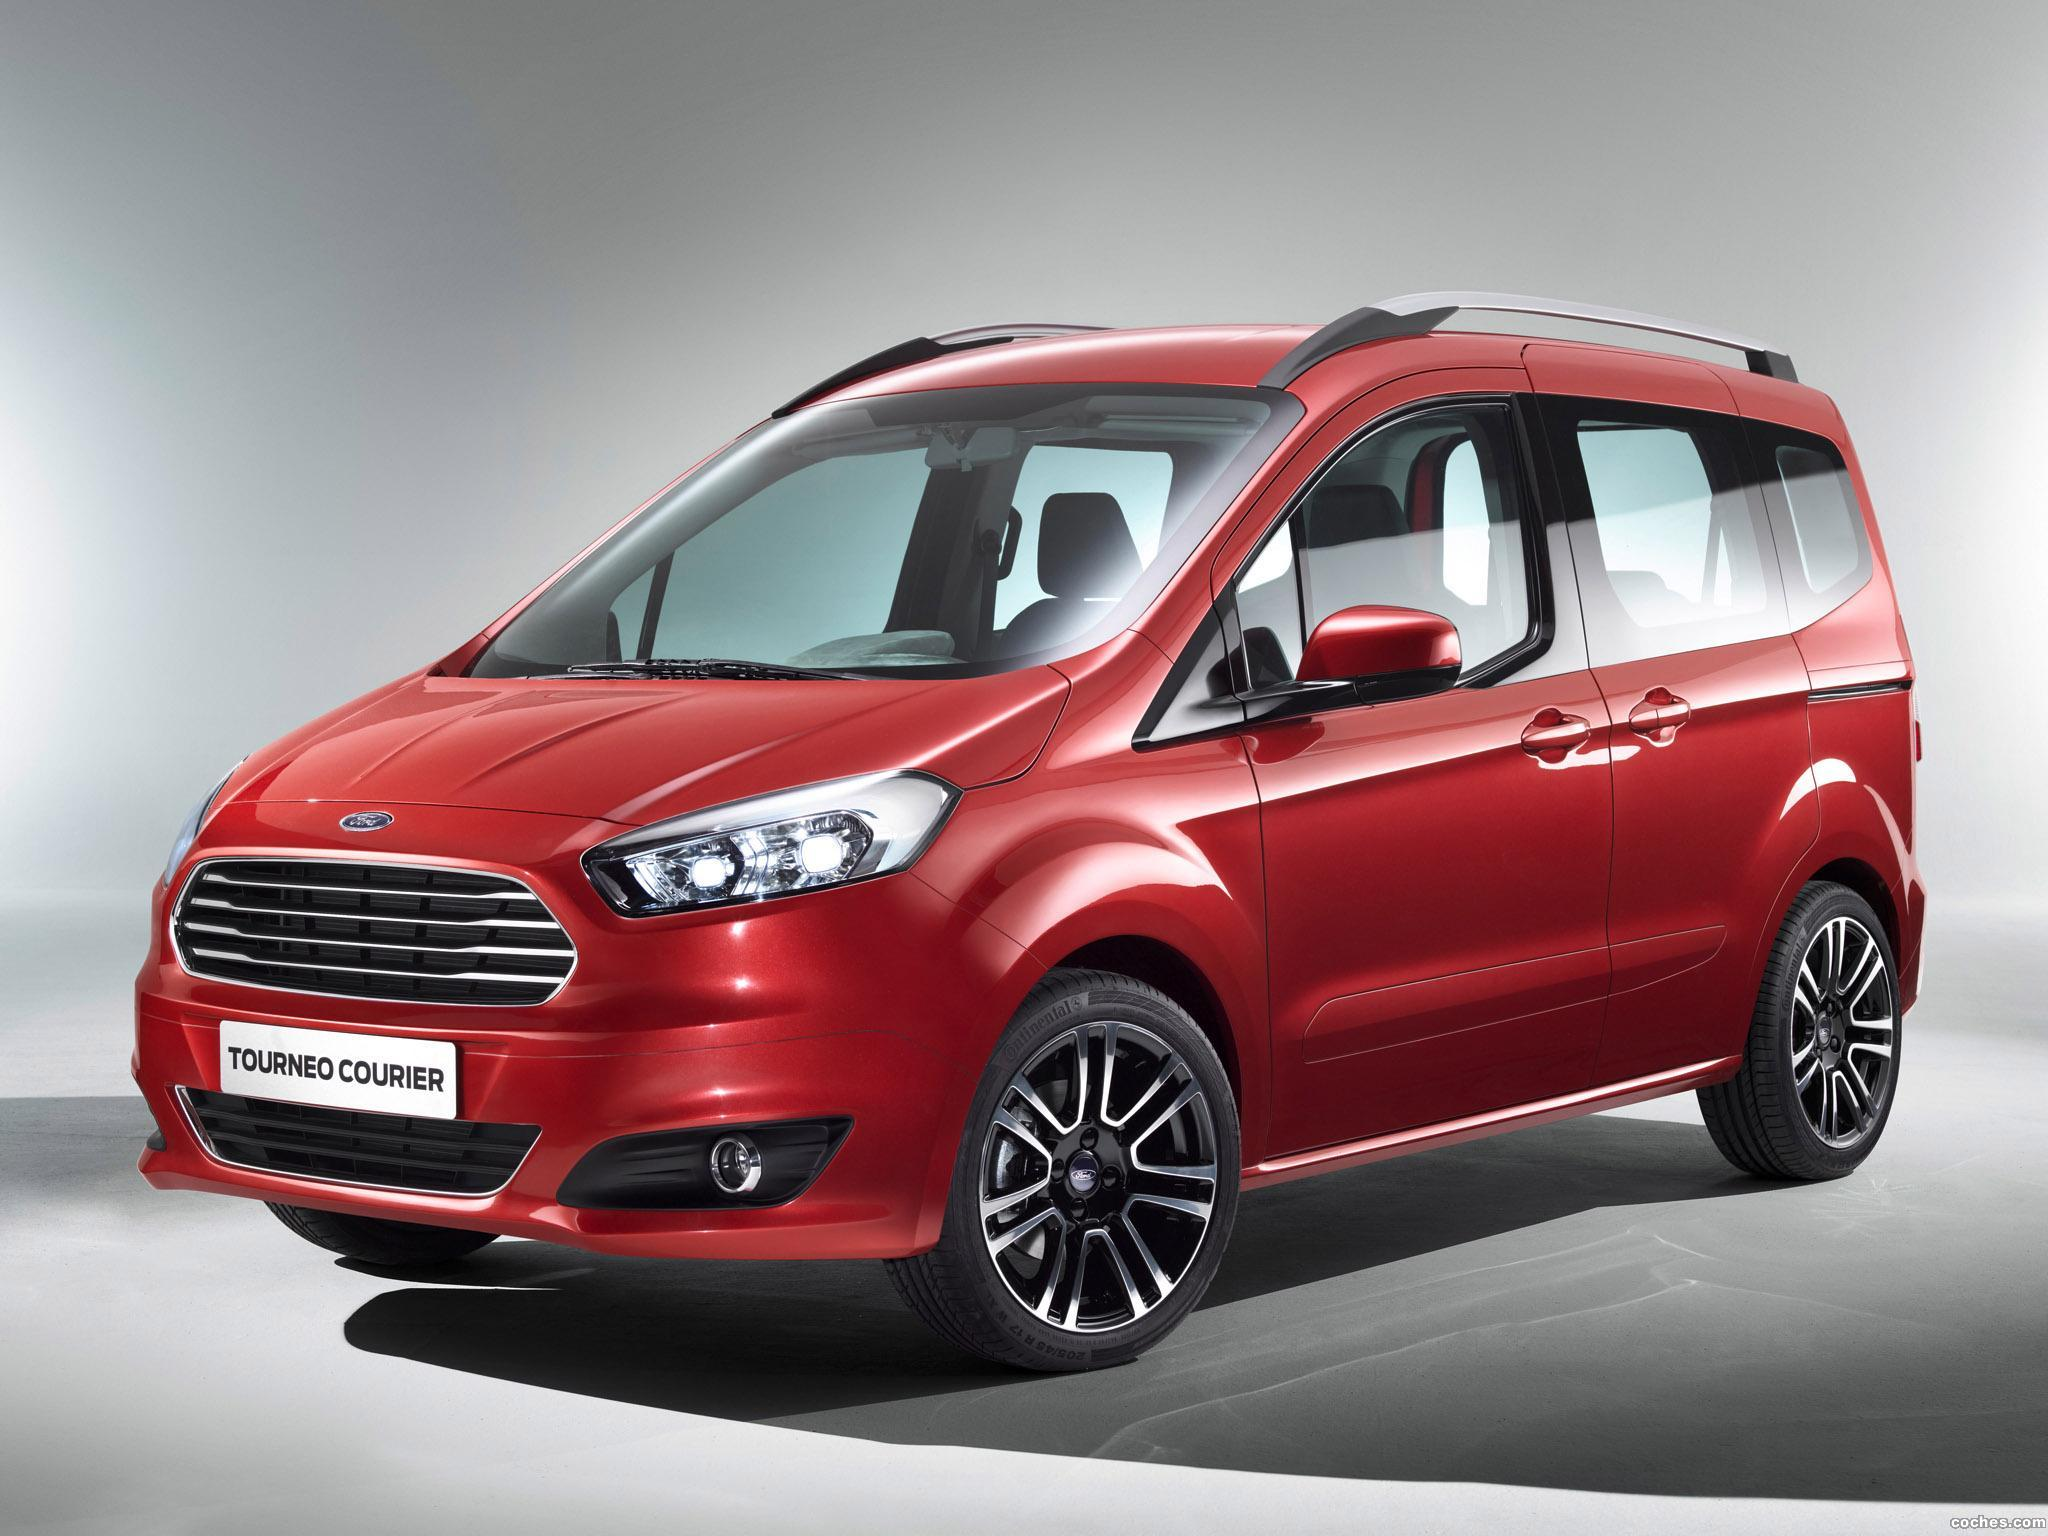 Foto 0 de Ford Tourneo Courier 2013